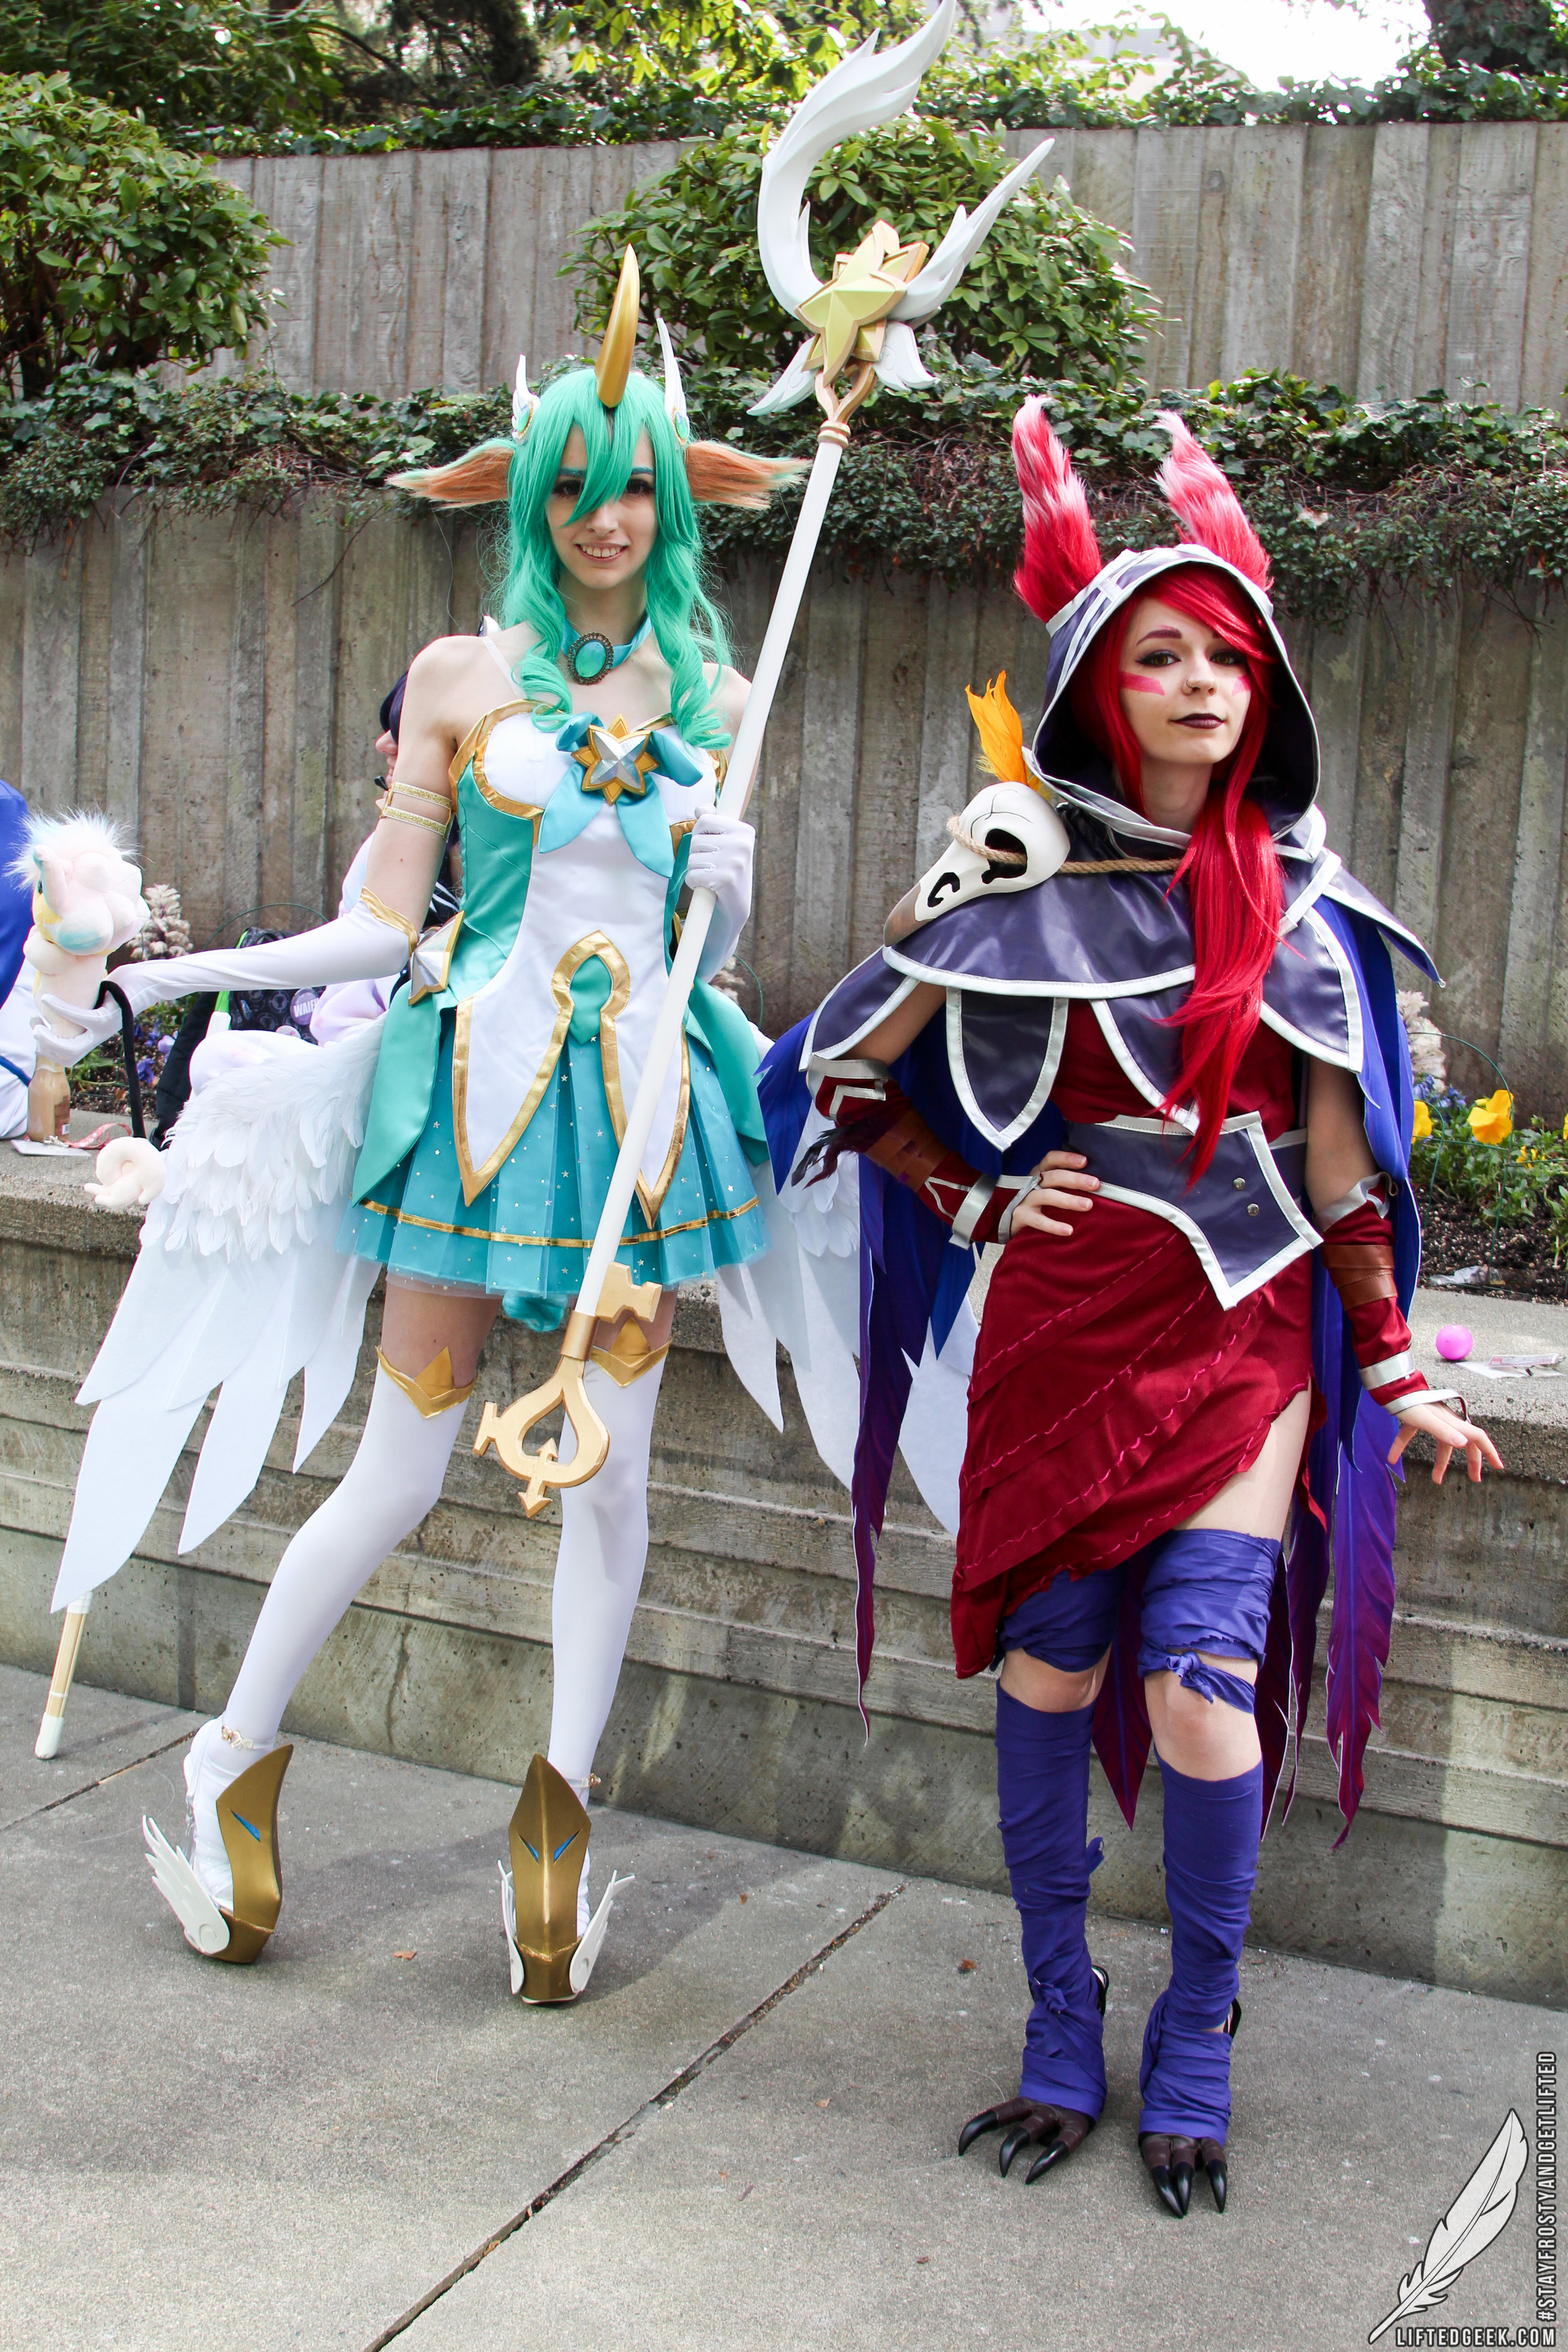 Sakuracon-cosplay-89.jpg